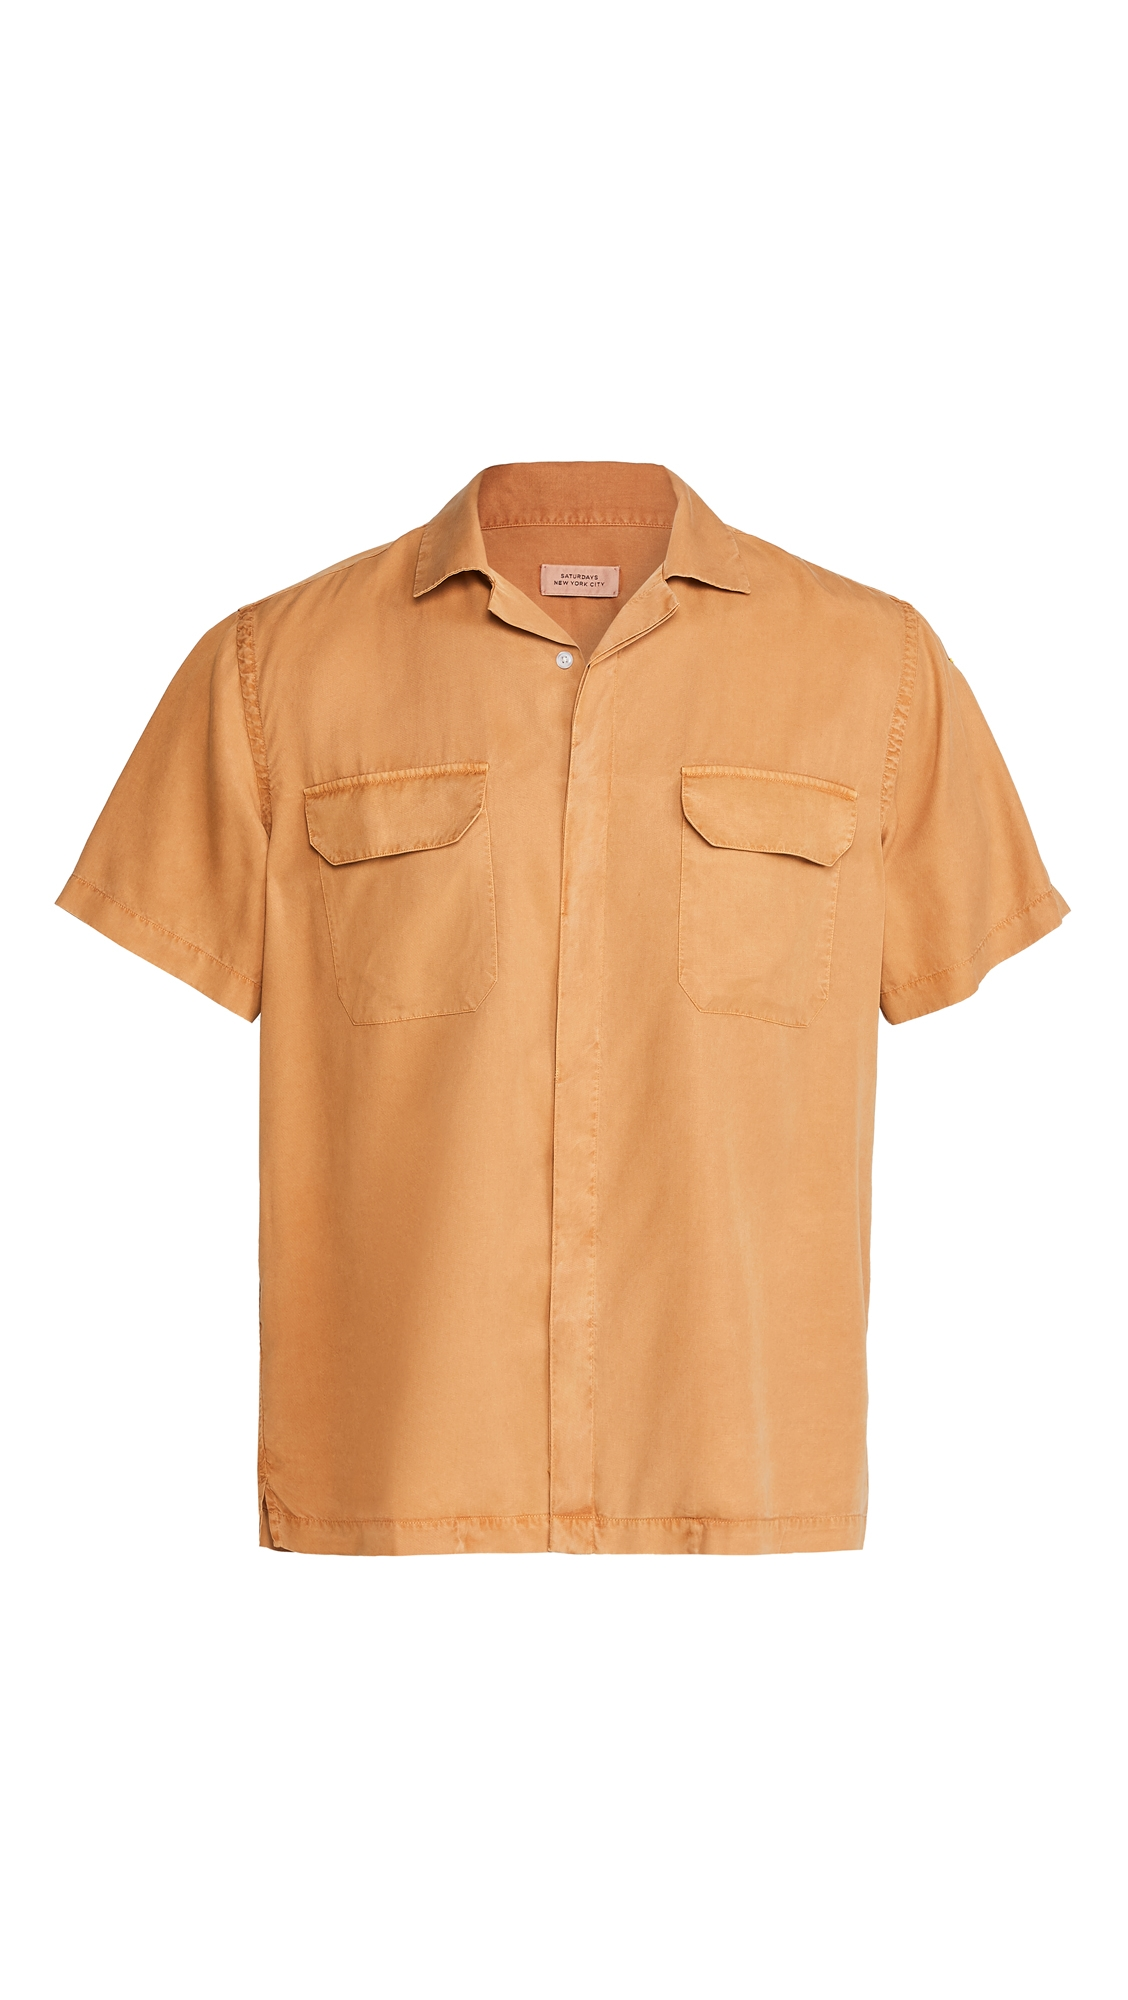 Gibson Double Pocket Short Sleeve Shirt